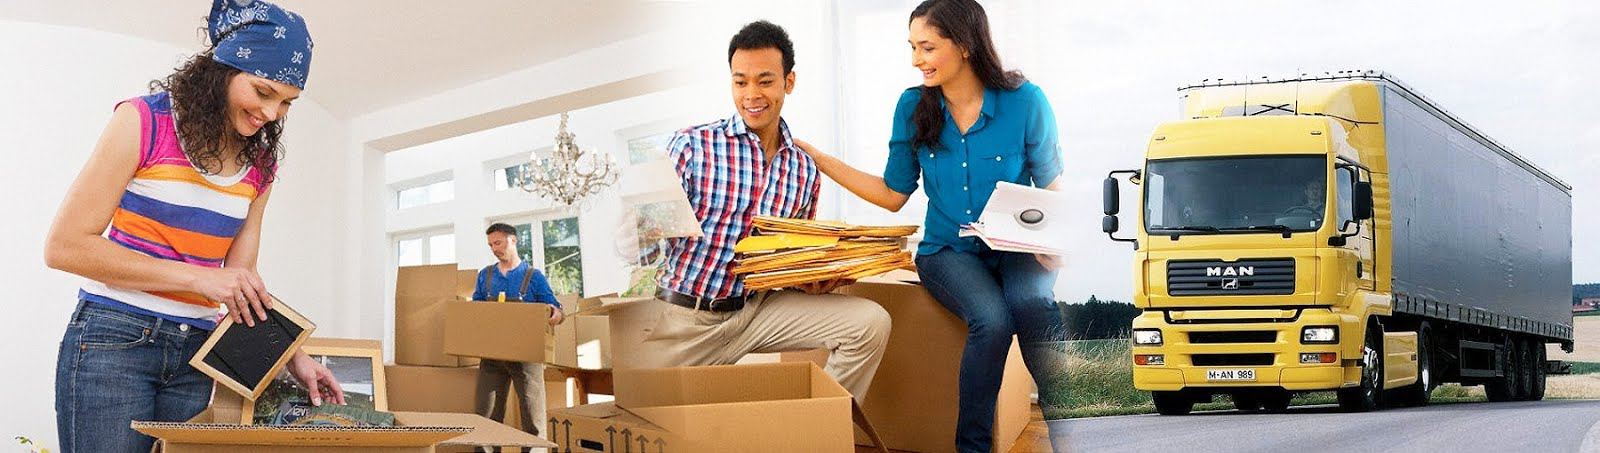 Packers and Movers in Delhi - Safe & Verified Relocation Services